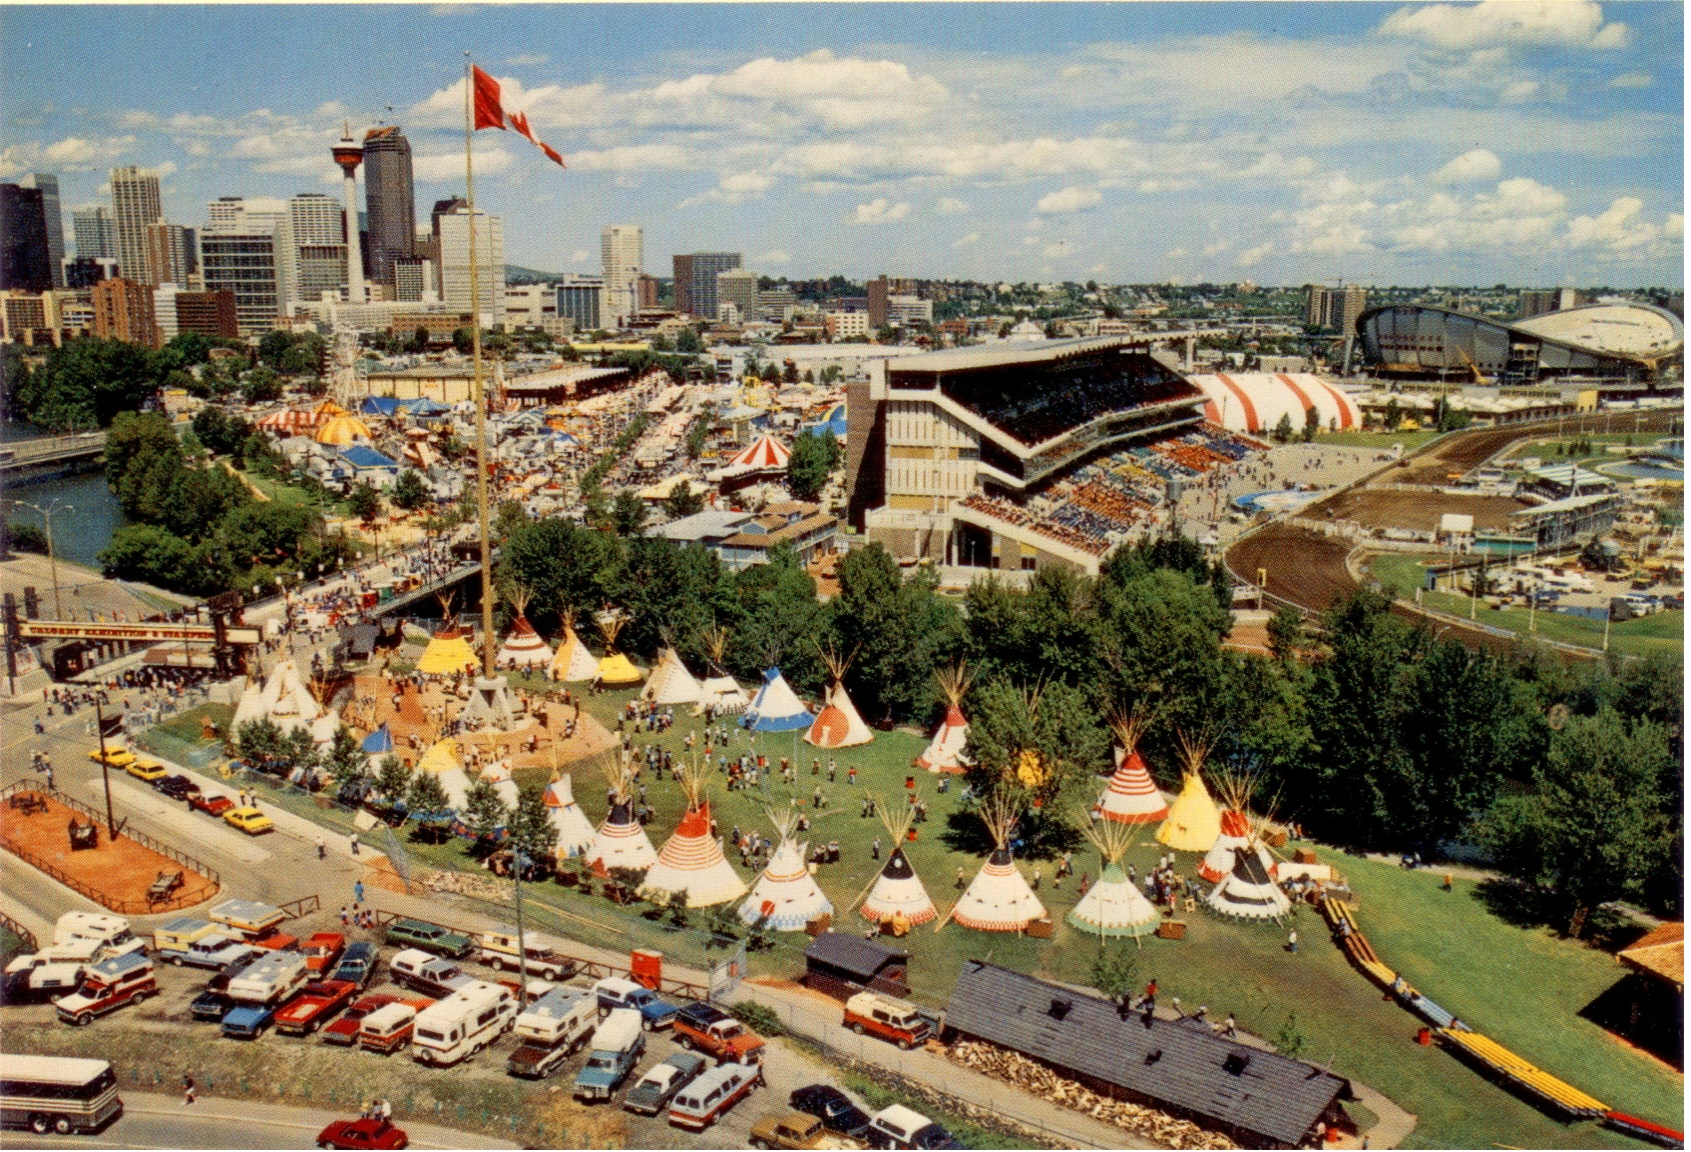 1980's view of the Indian Village at the Calgary Stampede